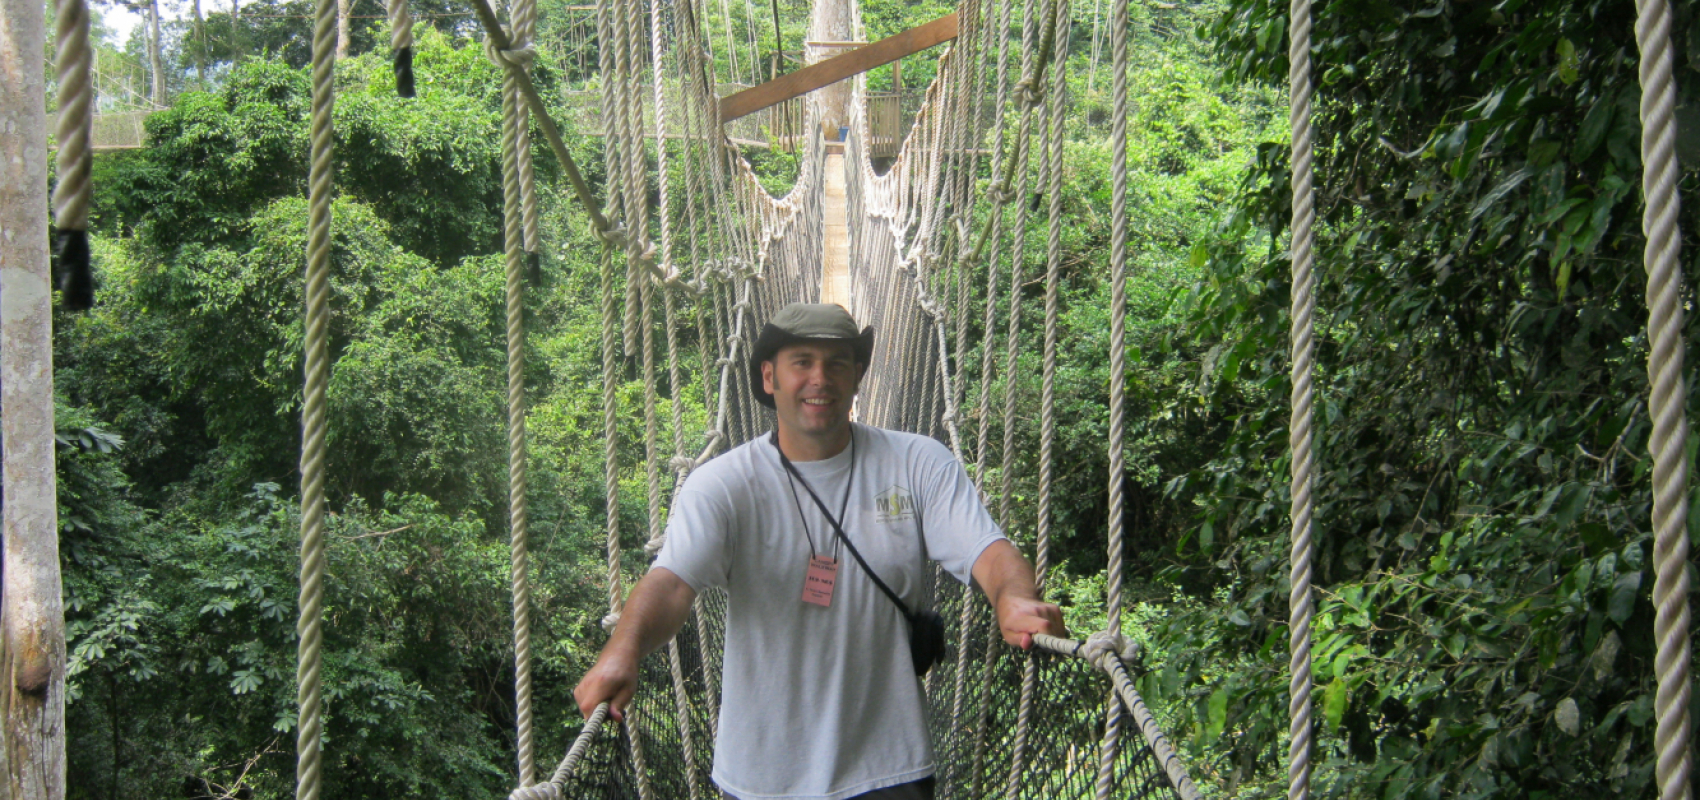 Dr. Frost on forest canopy rope bridge